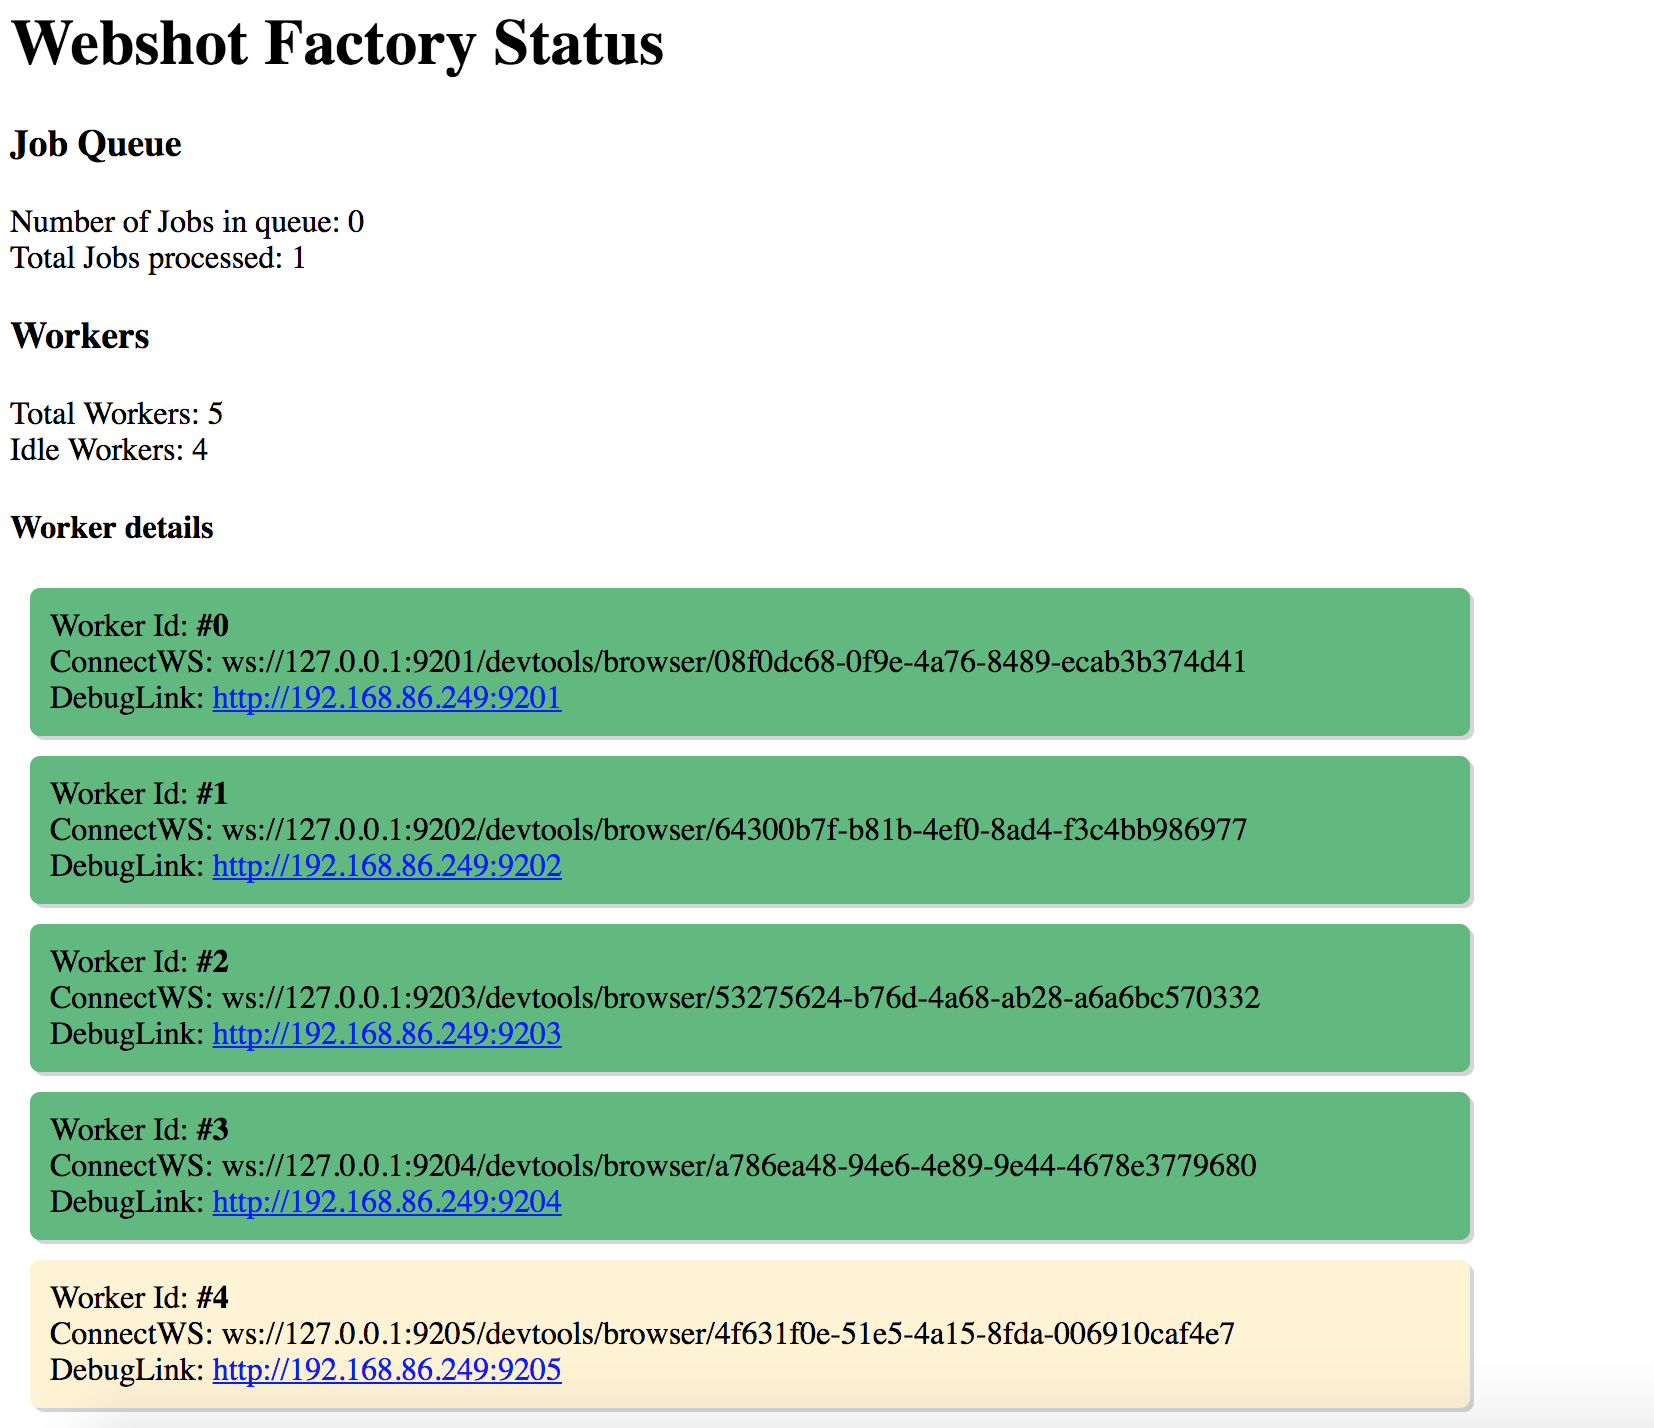 Webshot Factory status